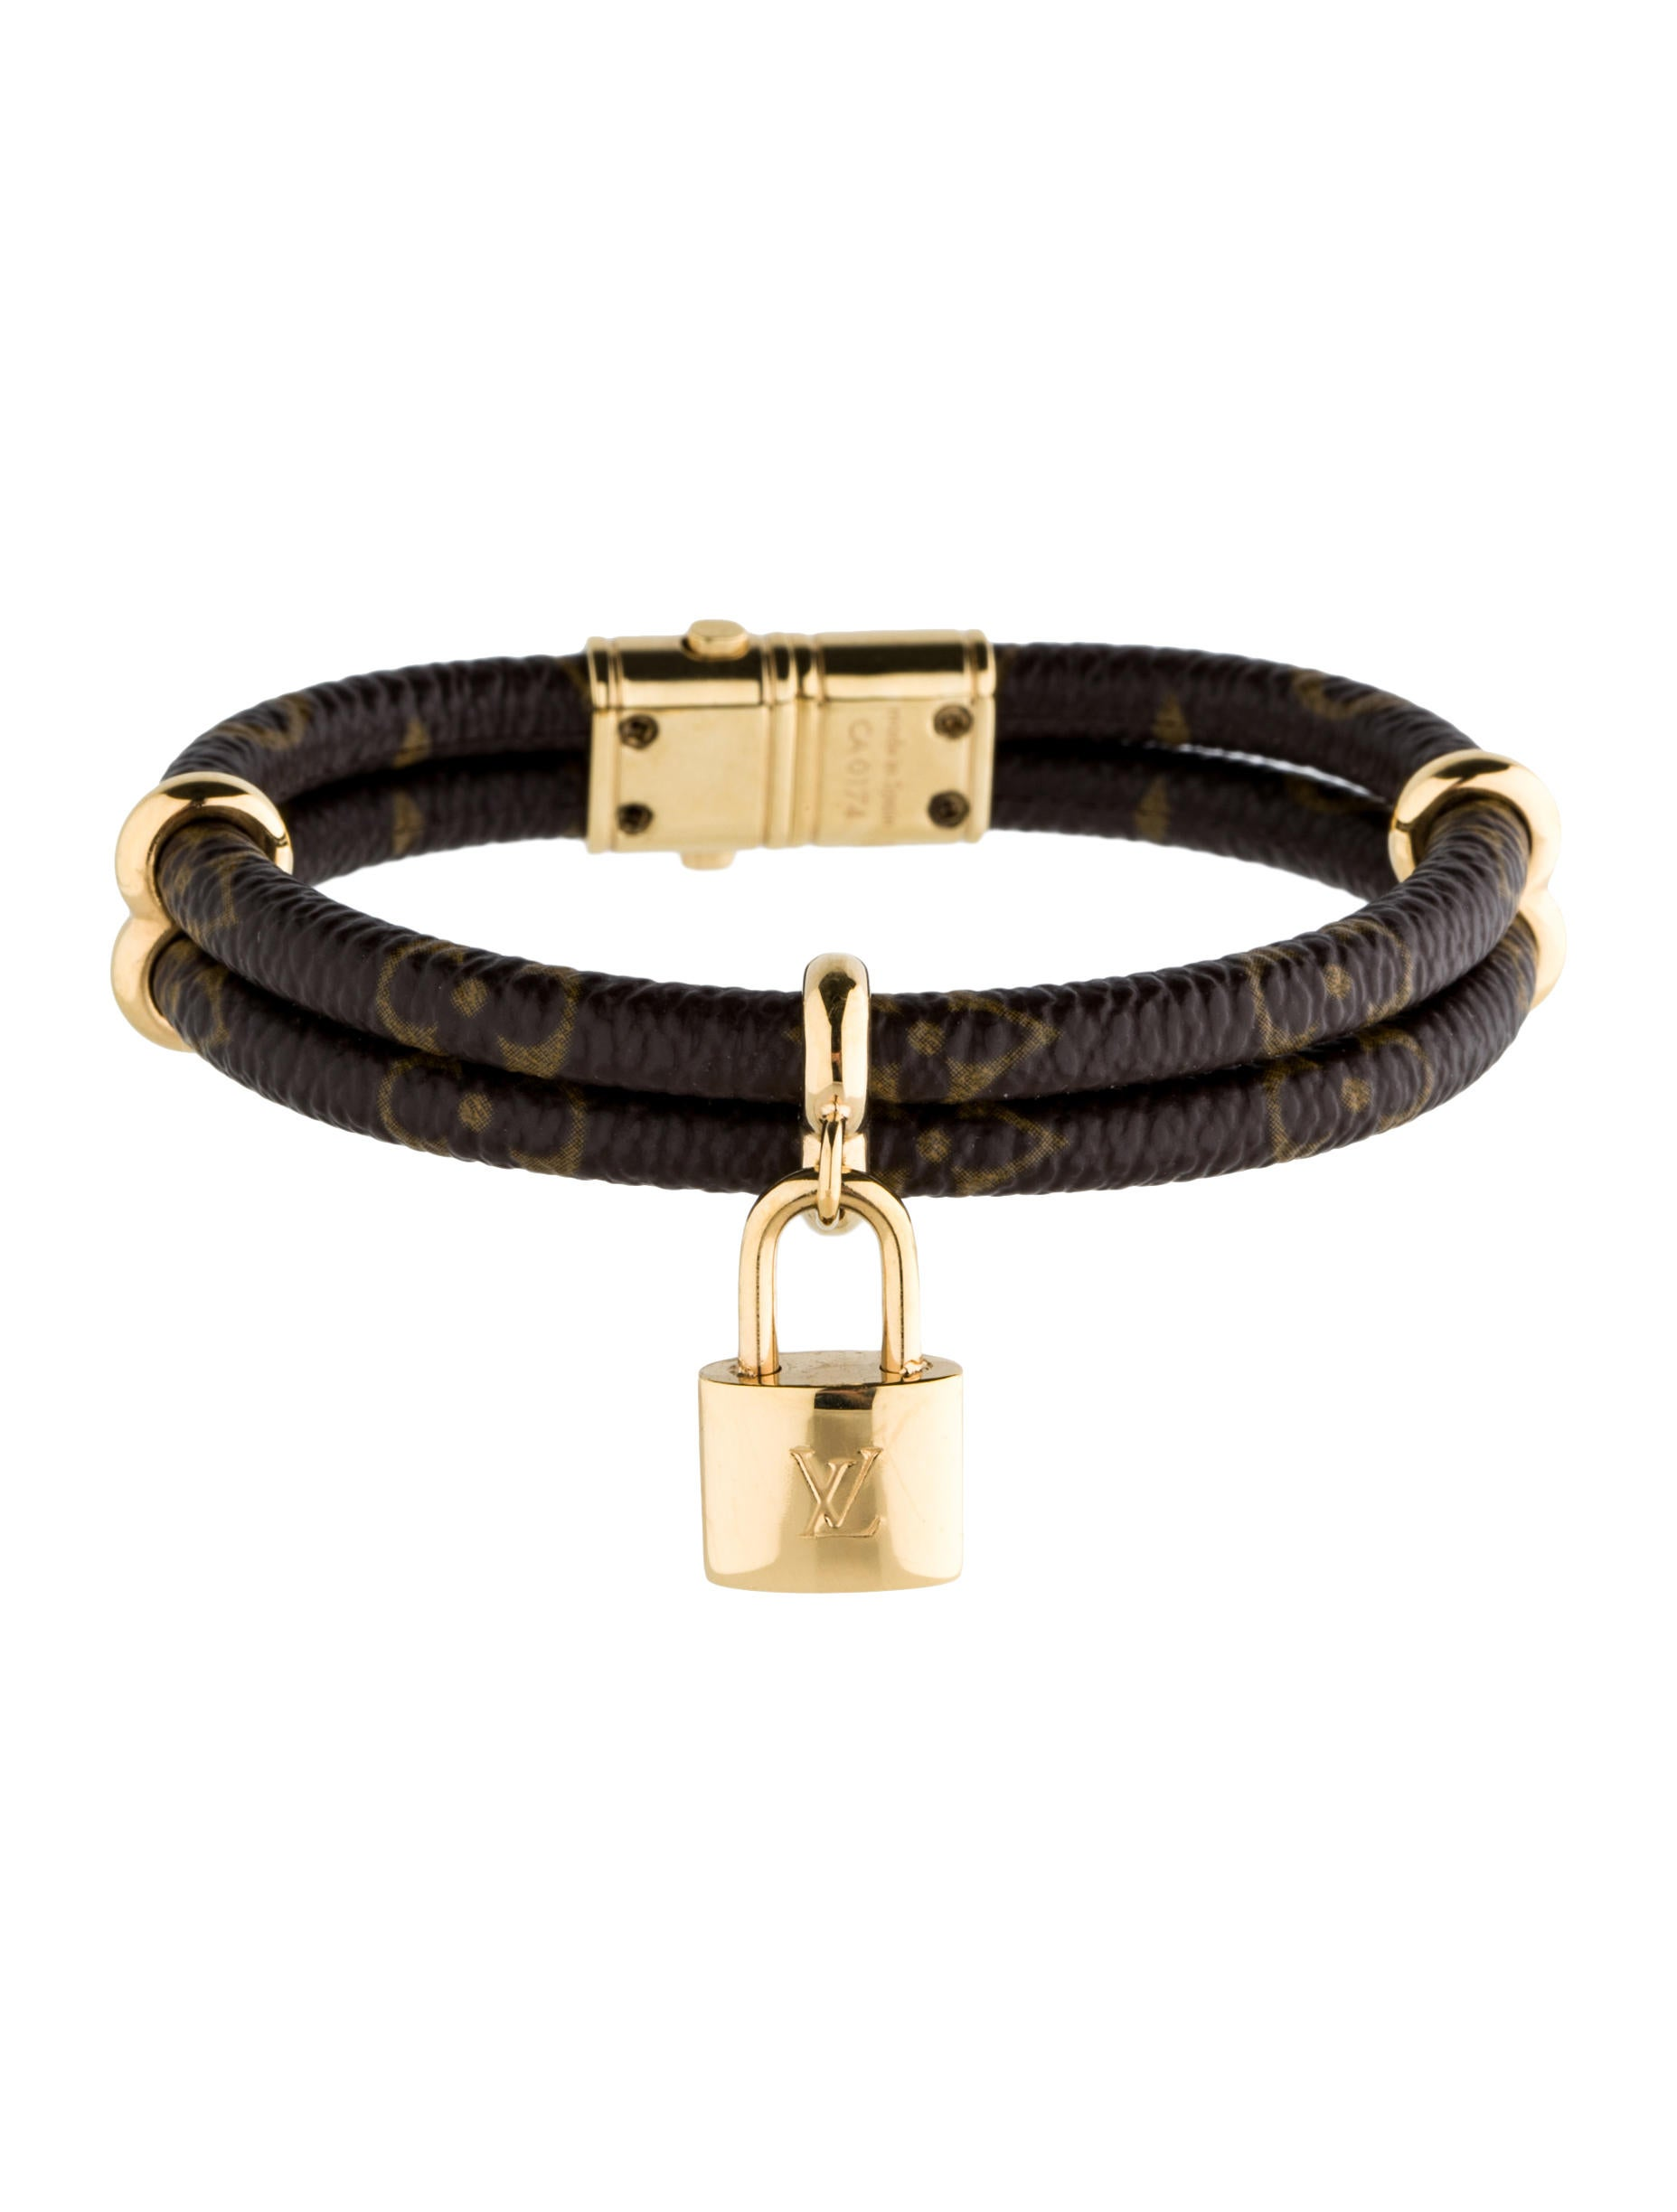 Louis Vuitton Keep It Twice Monogram Bracelet Bracelets Lou43398 The Realreal